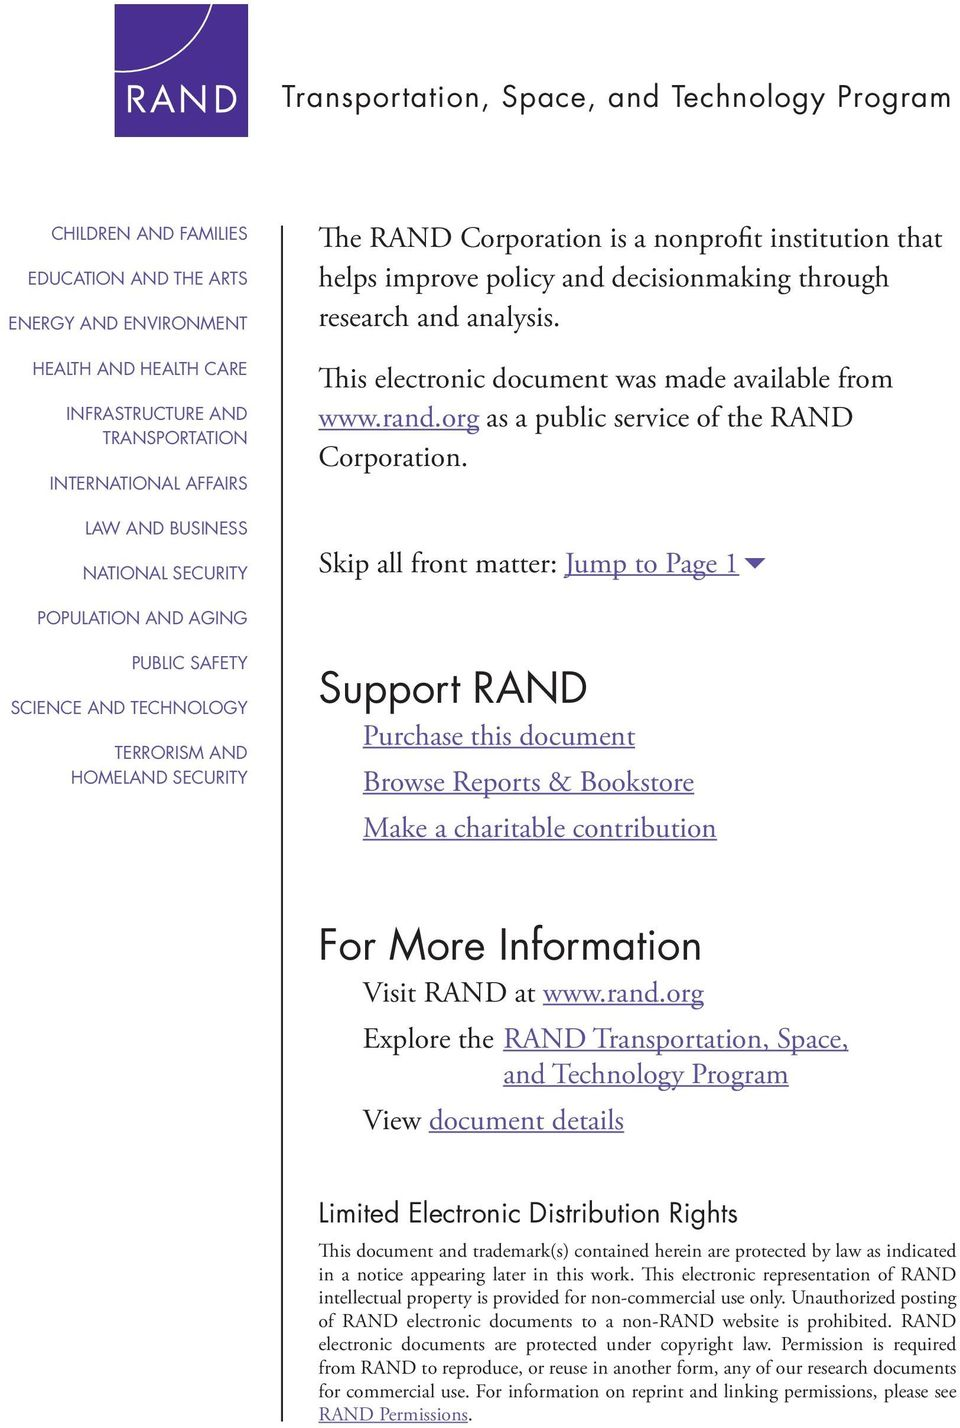 This electronic document was made available from www.rand.org as a public service of the RAND Corporation.